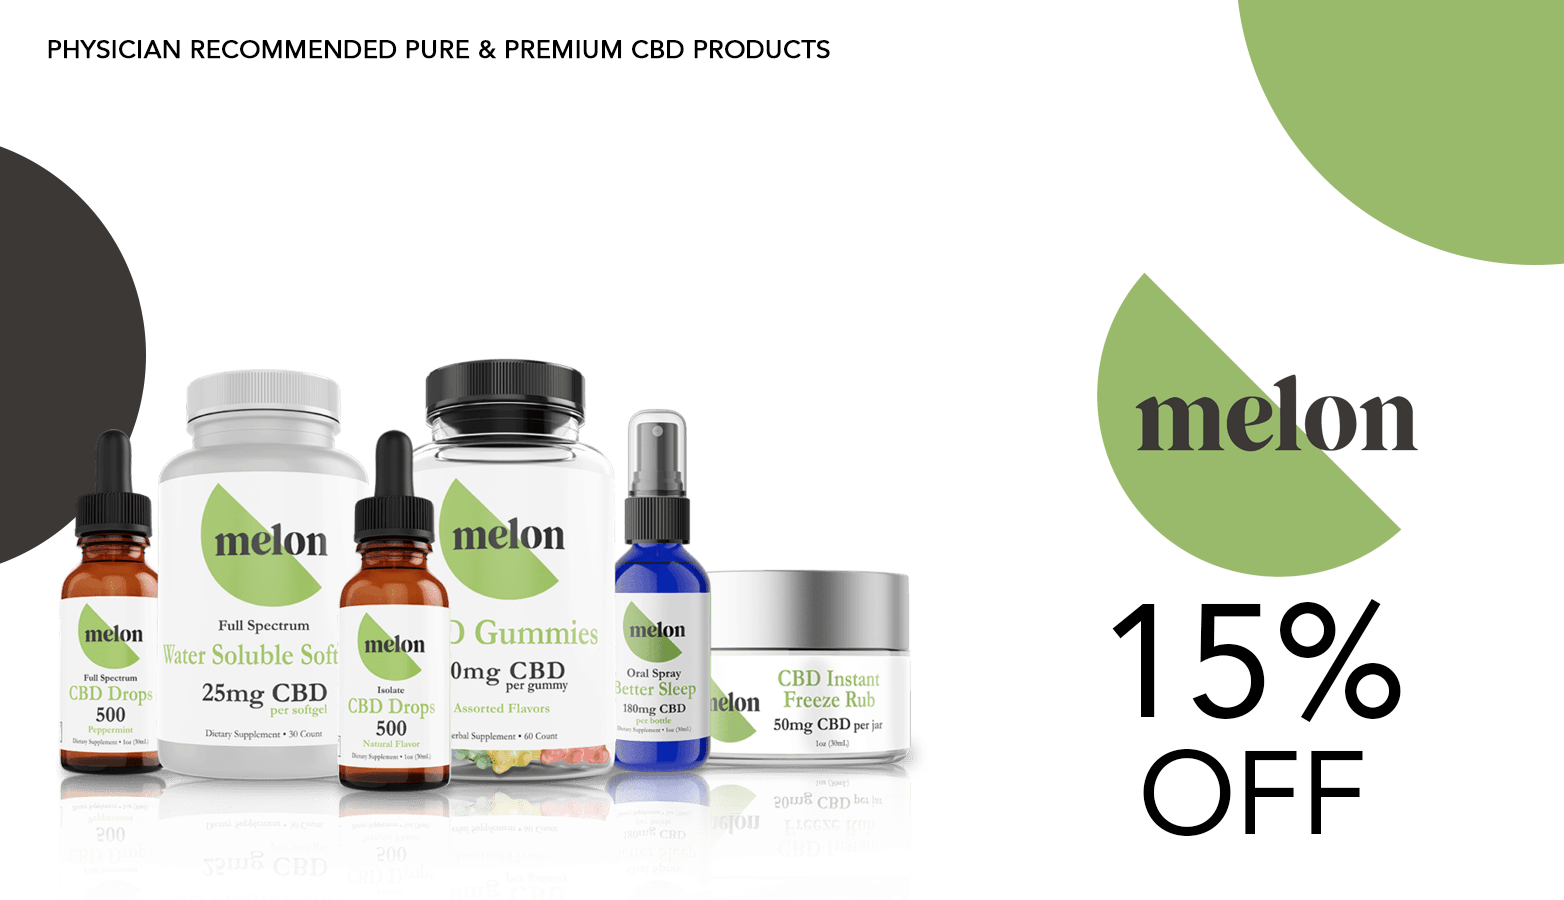 Melon CBD Coupon Code Offer Website